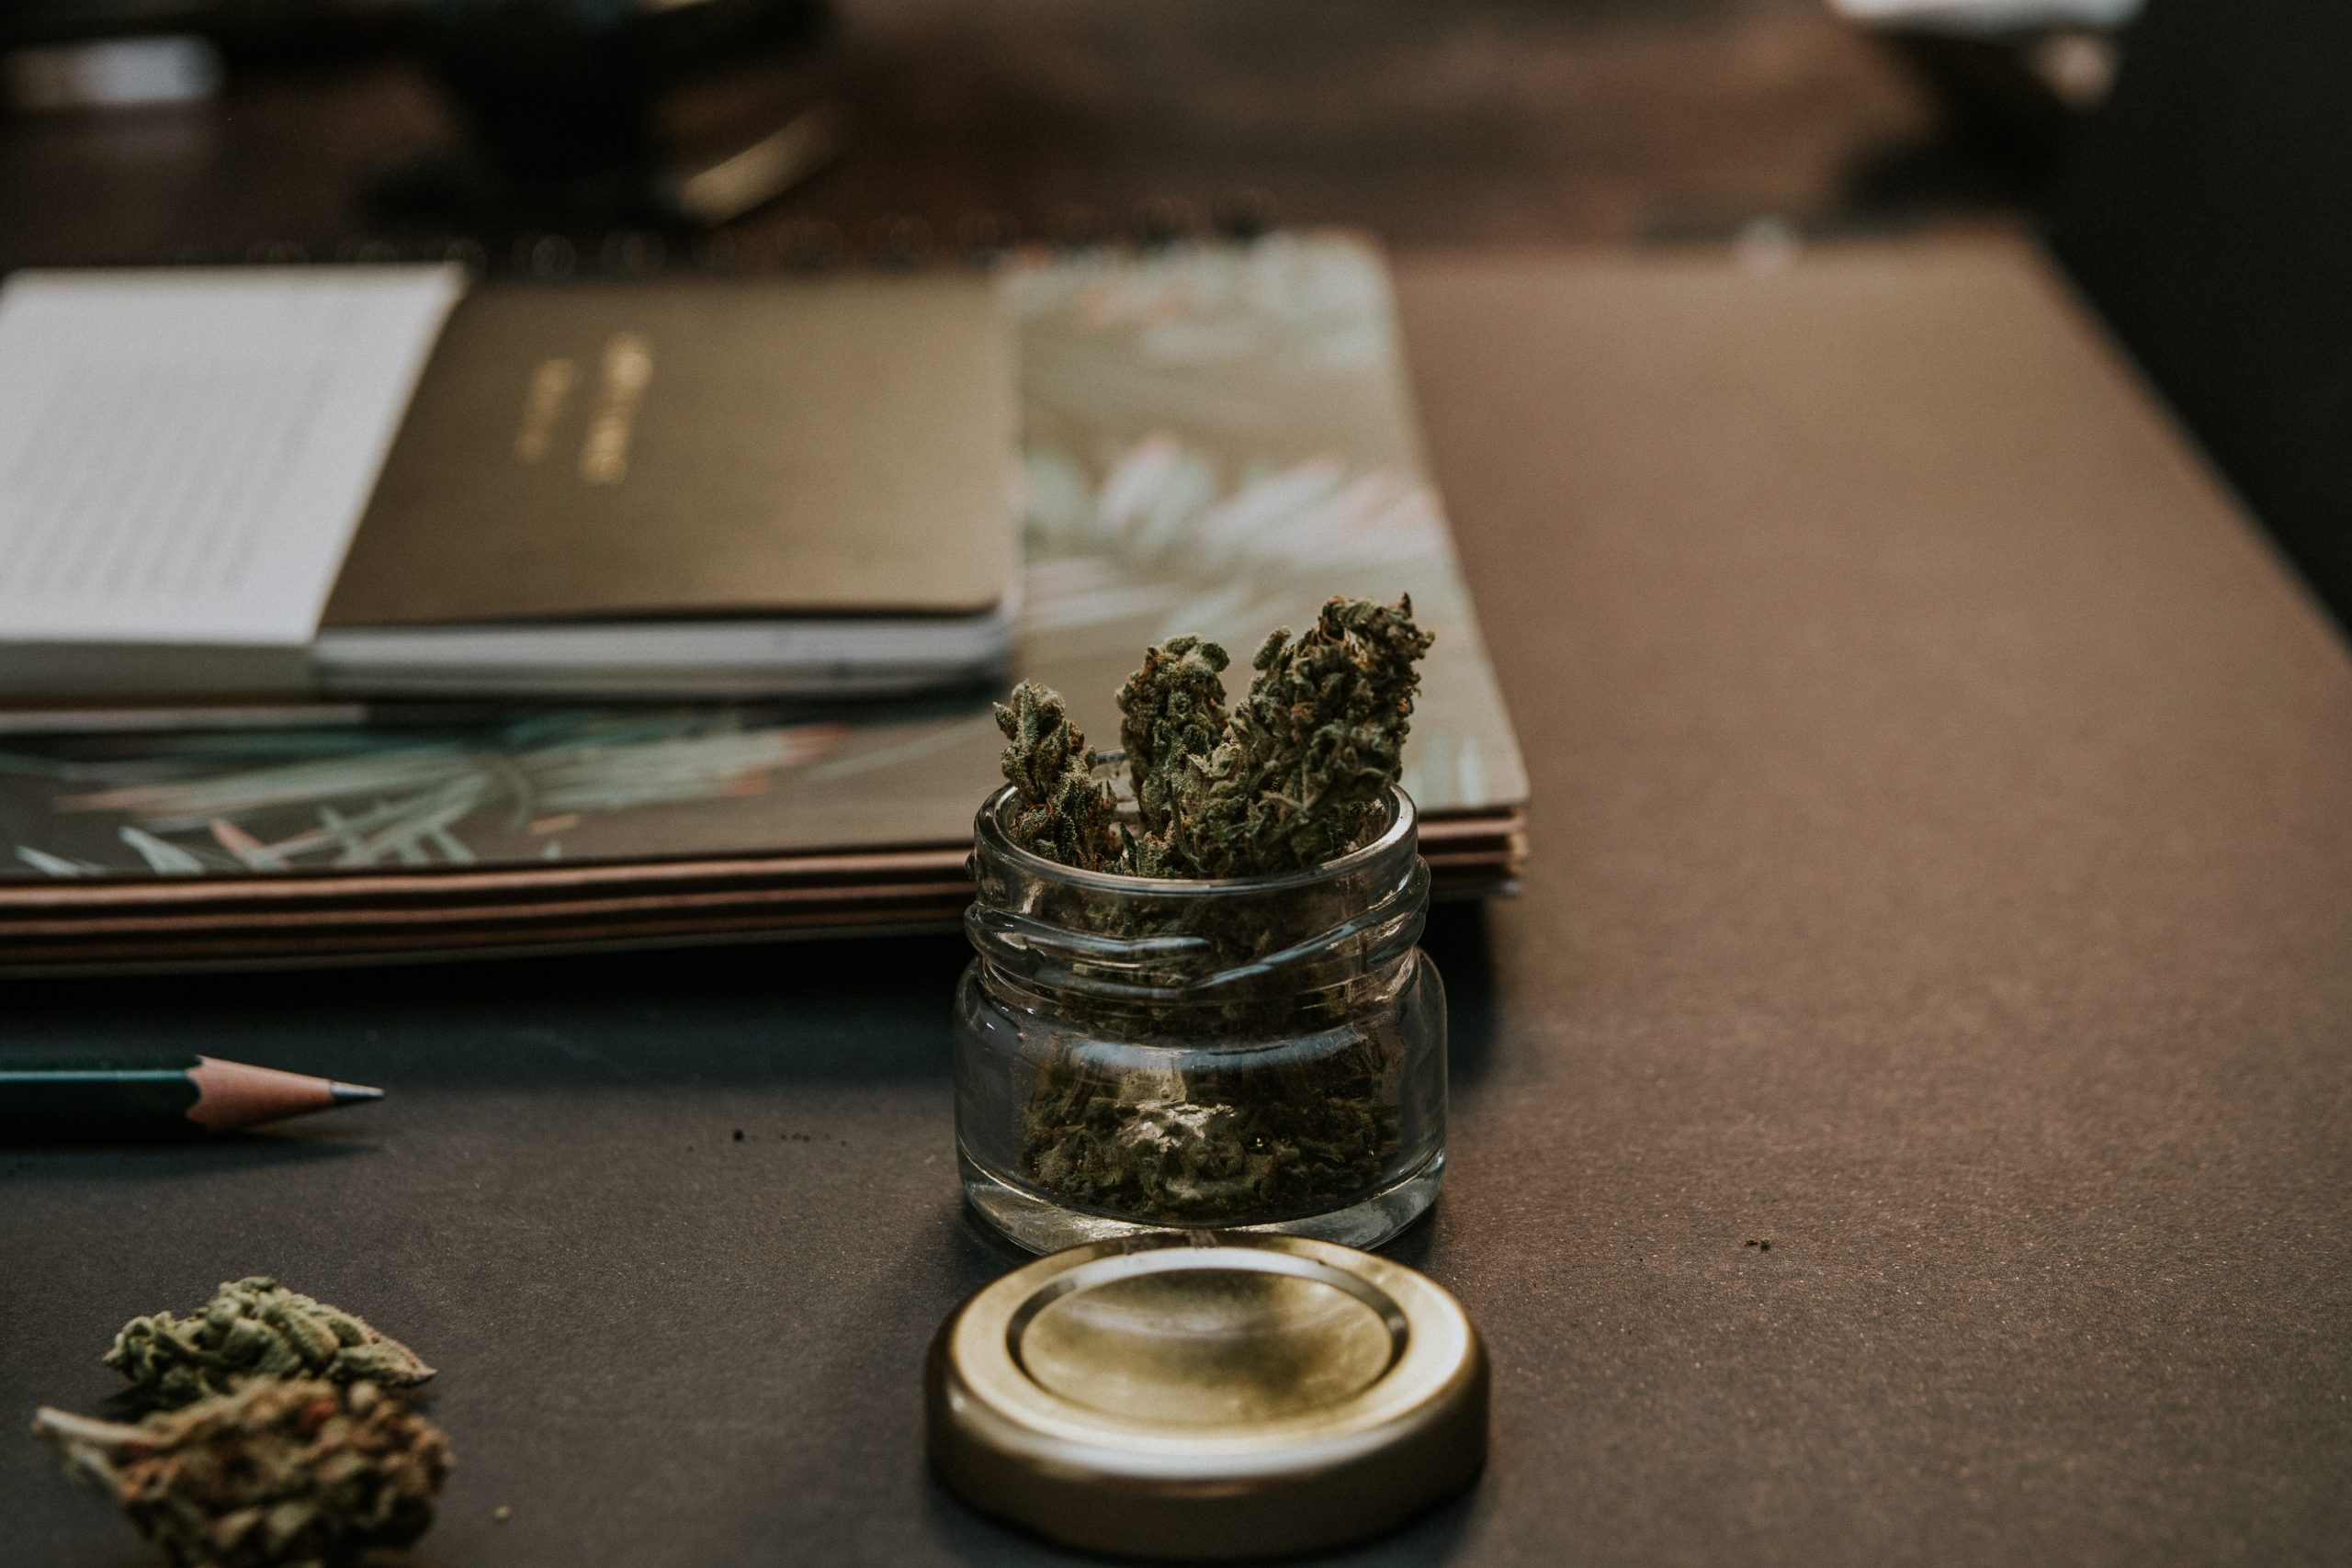 Cannabis on Table